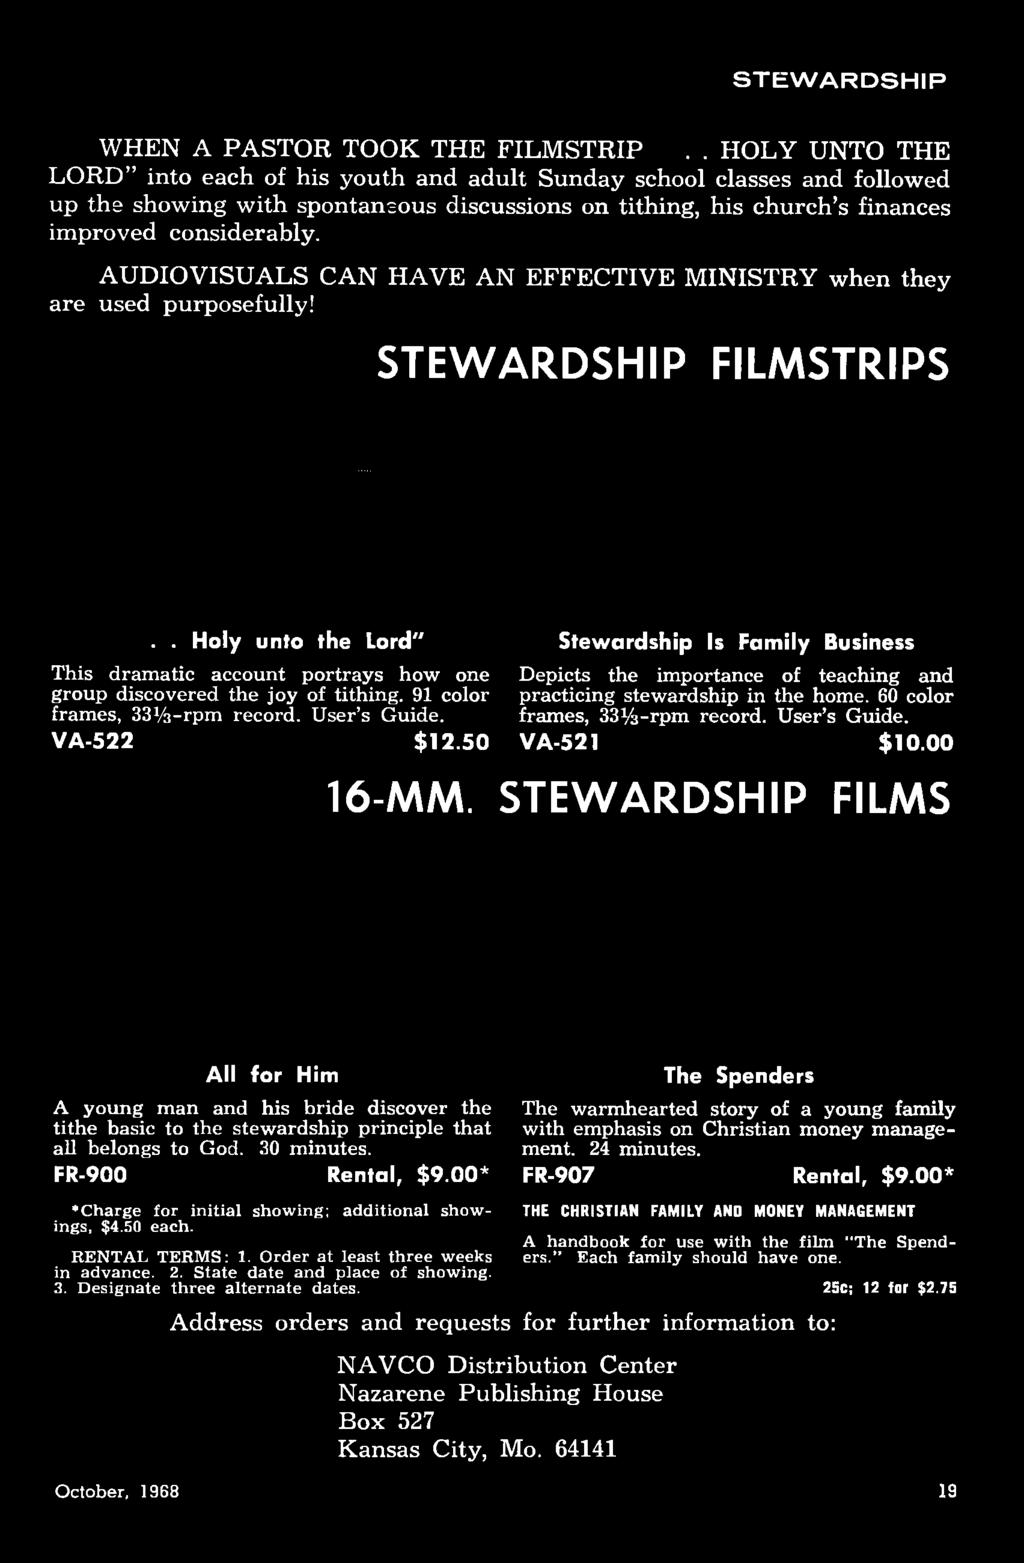 50 Stewardship Is Fam ily Business Depicts the importance of teaching a n d practicing stewardship in the home. 60 color frames, 33y3-rpm record. User s Guide. VA-521 $10.00 16-MM.